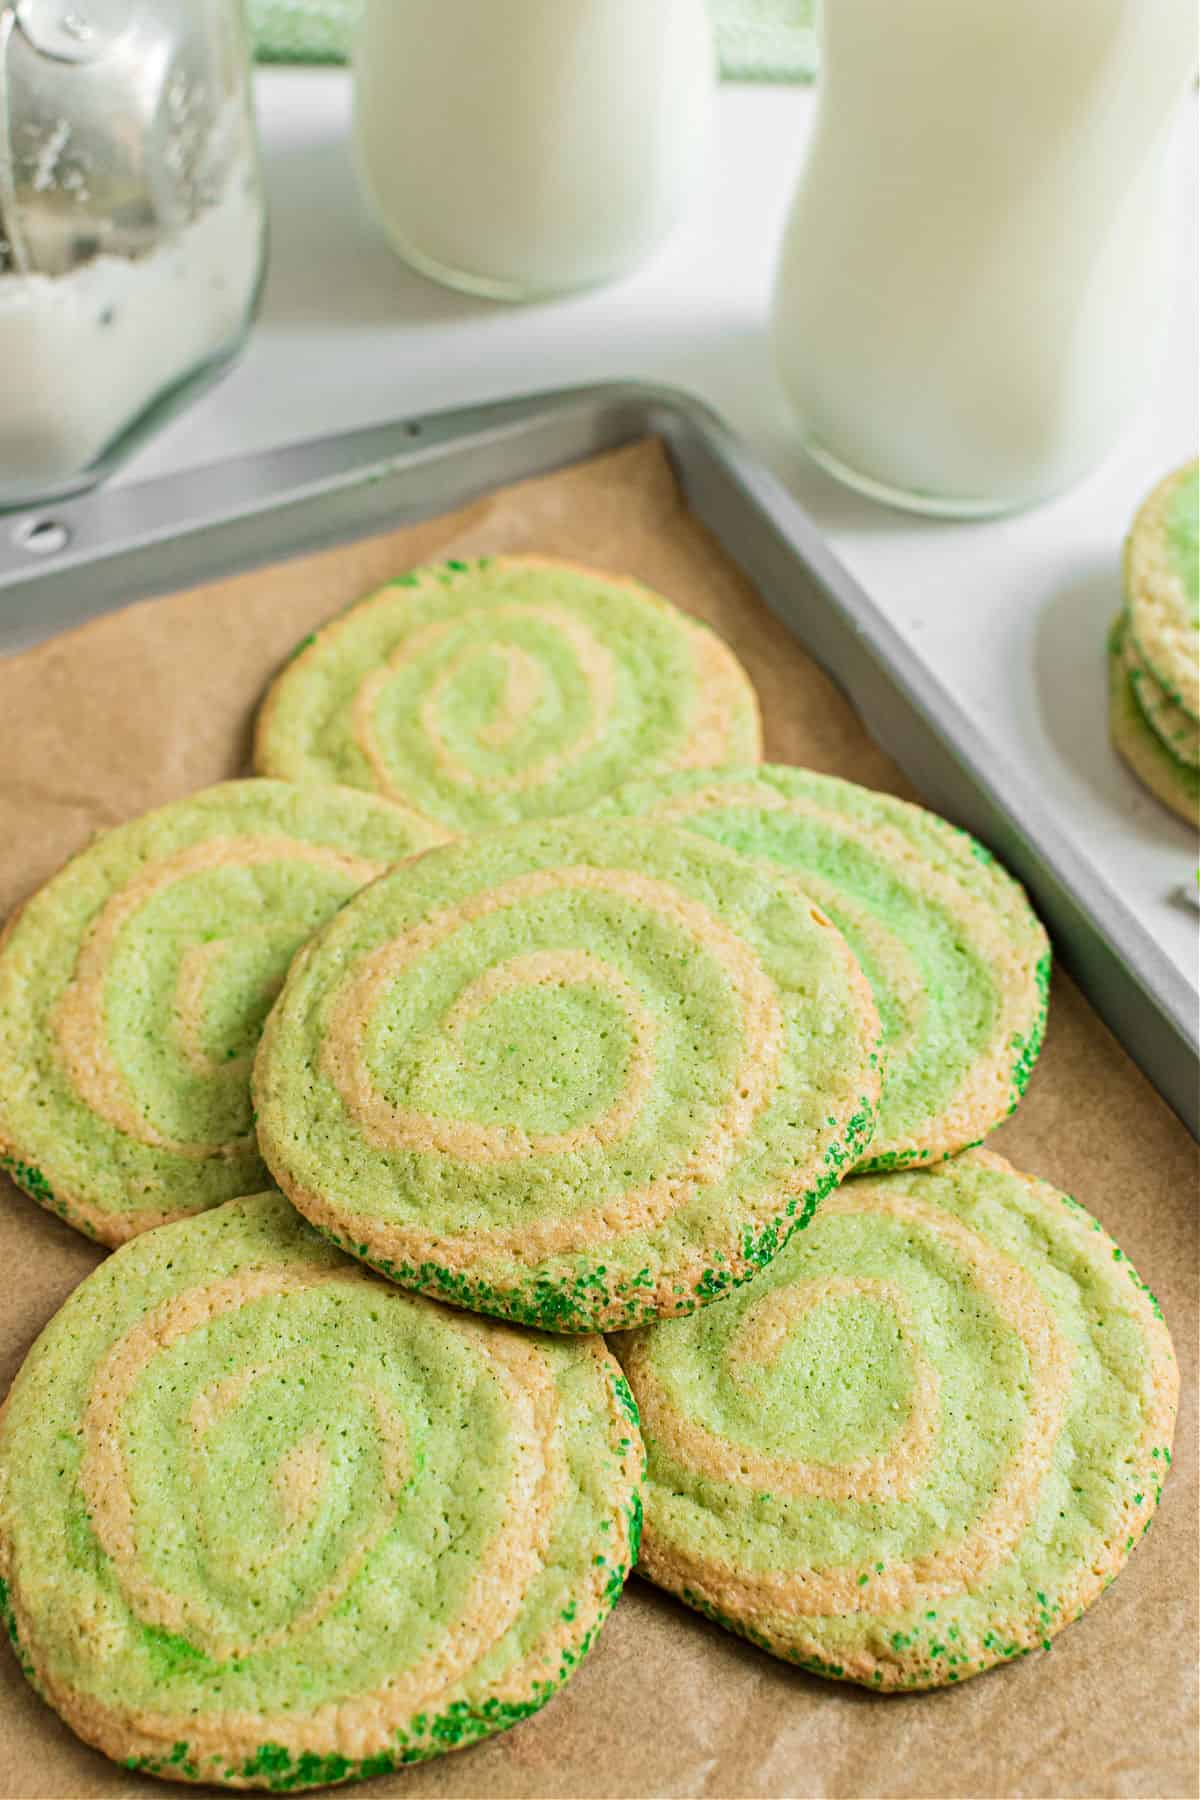 Stack of baked icebox swirled cookies on a parchment paper lined baking sheet.